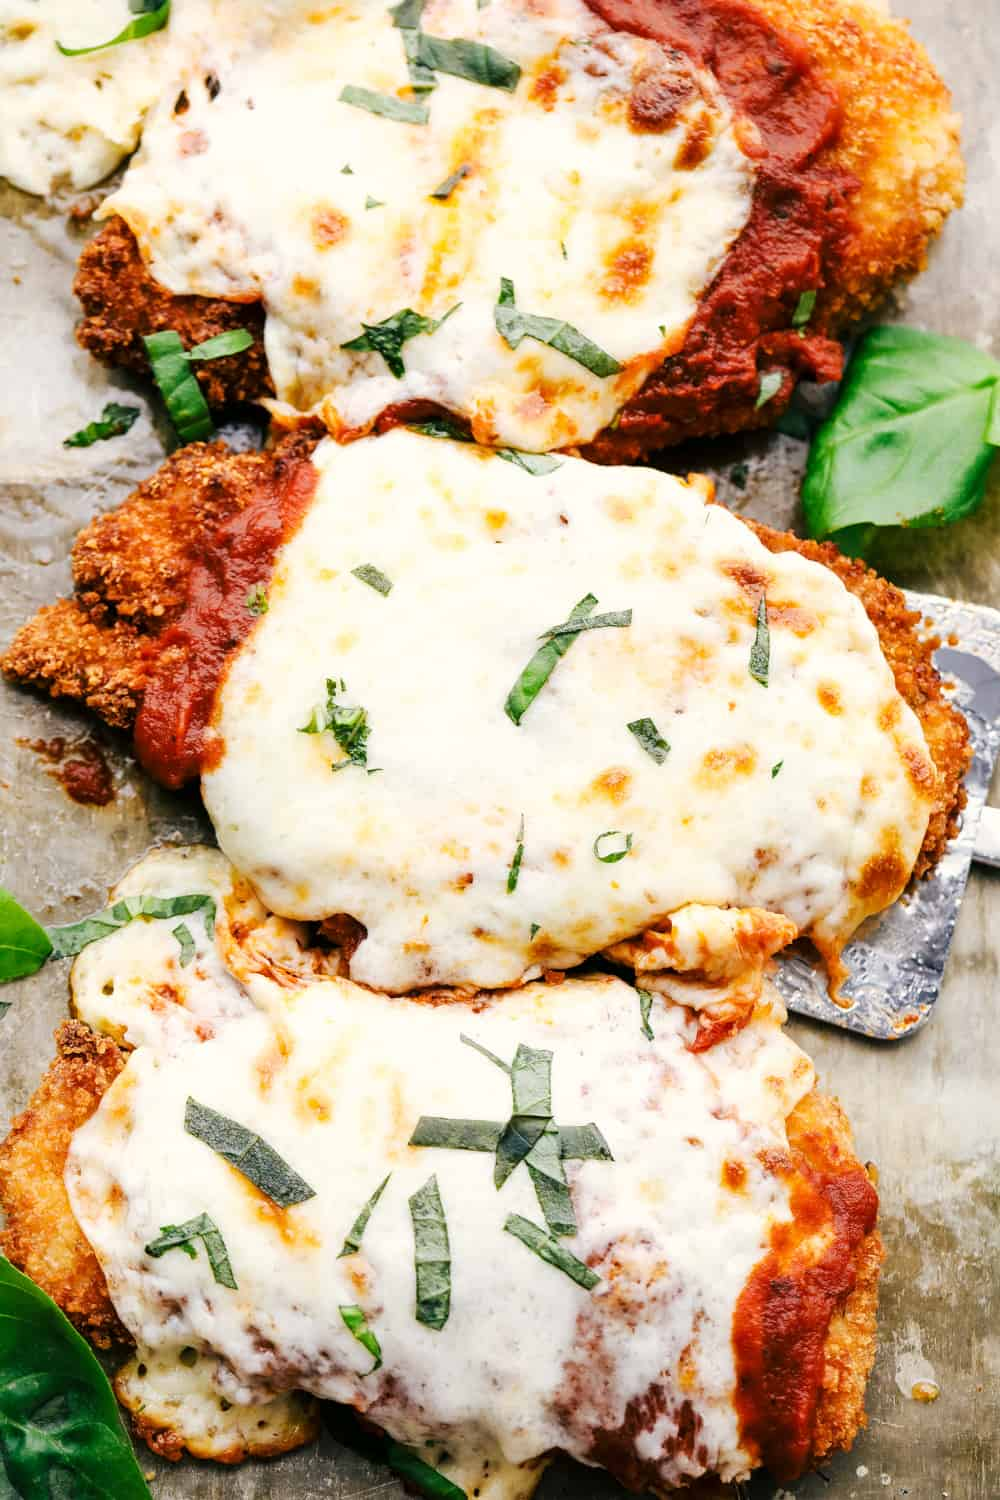 Chicken parmesan with marinara and melted cheese.